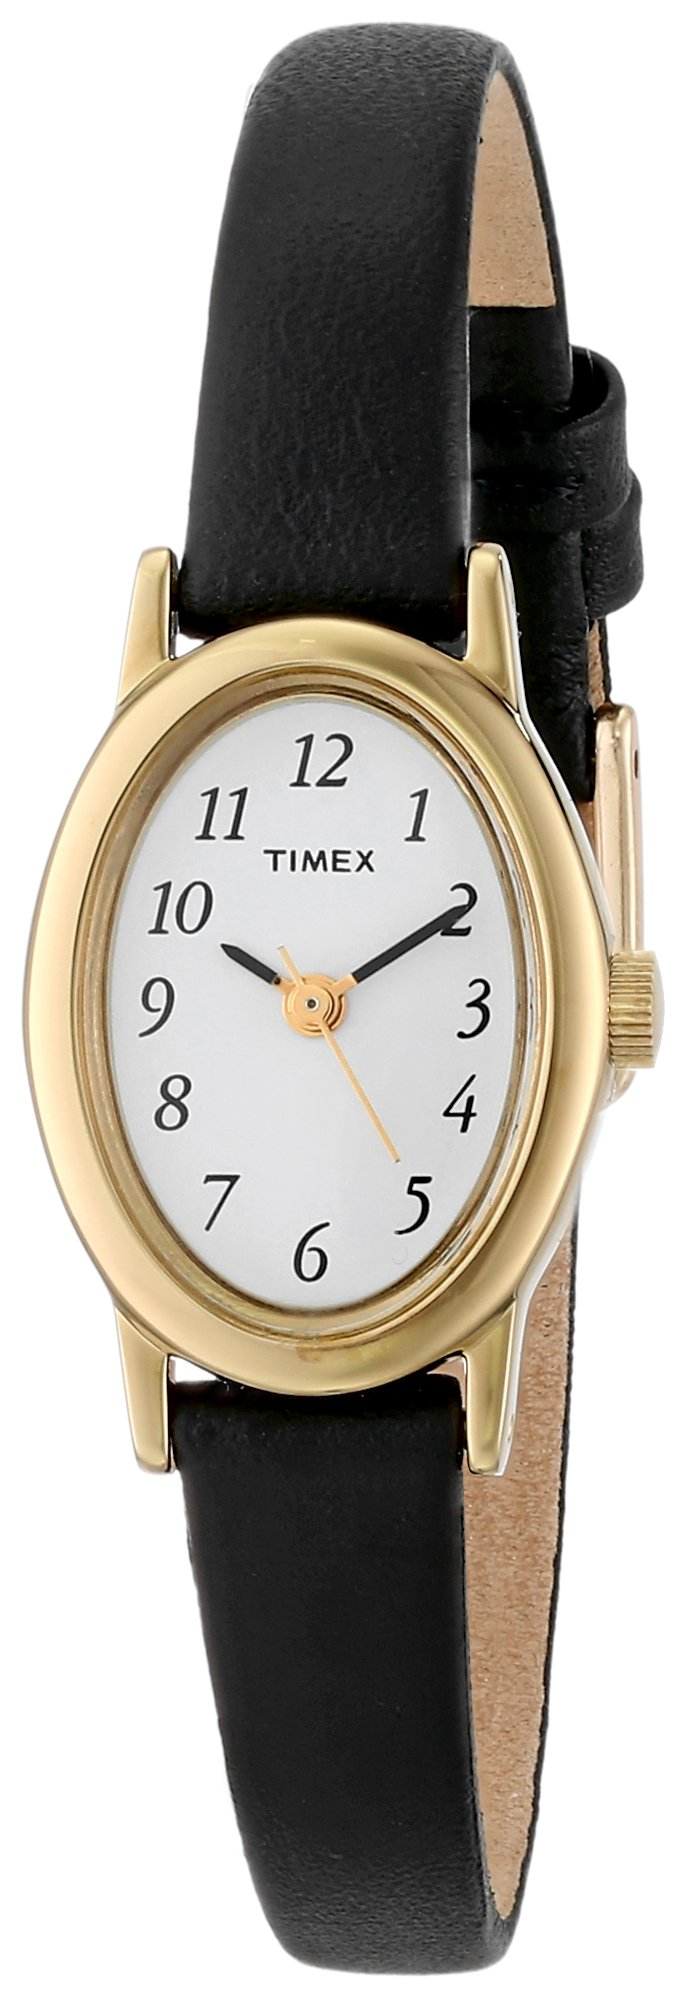 Timex Women's T21912 Cavatina Black Leather Strap Watch by Timex